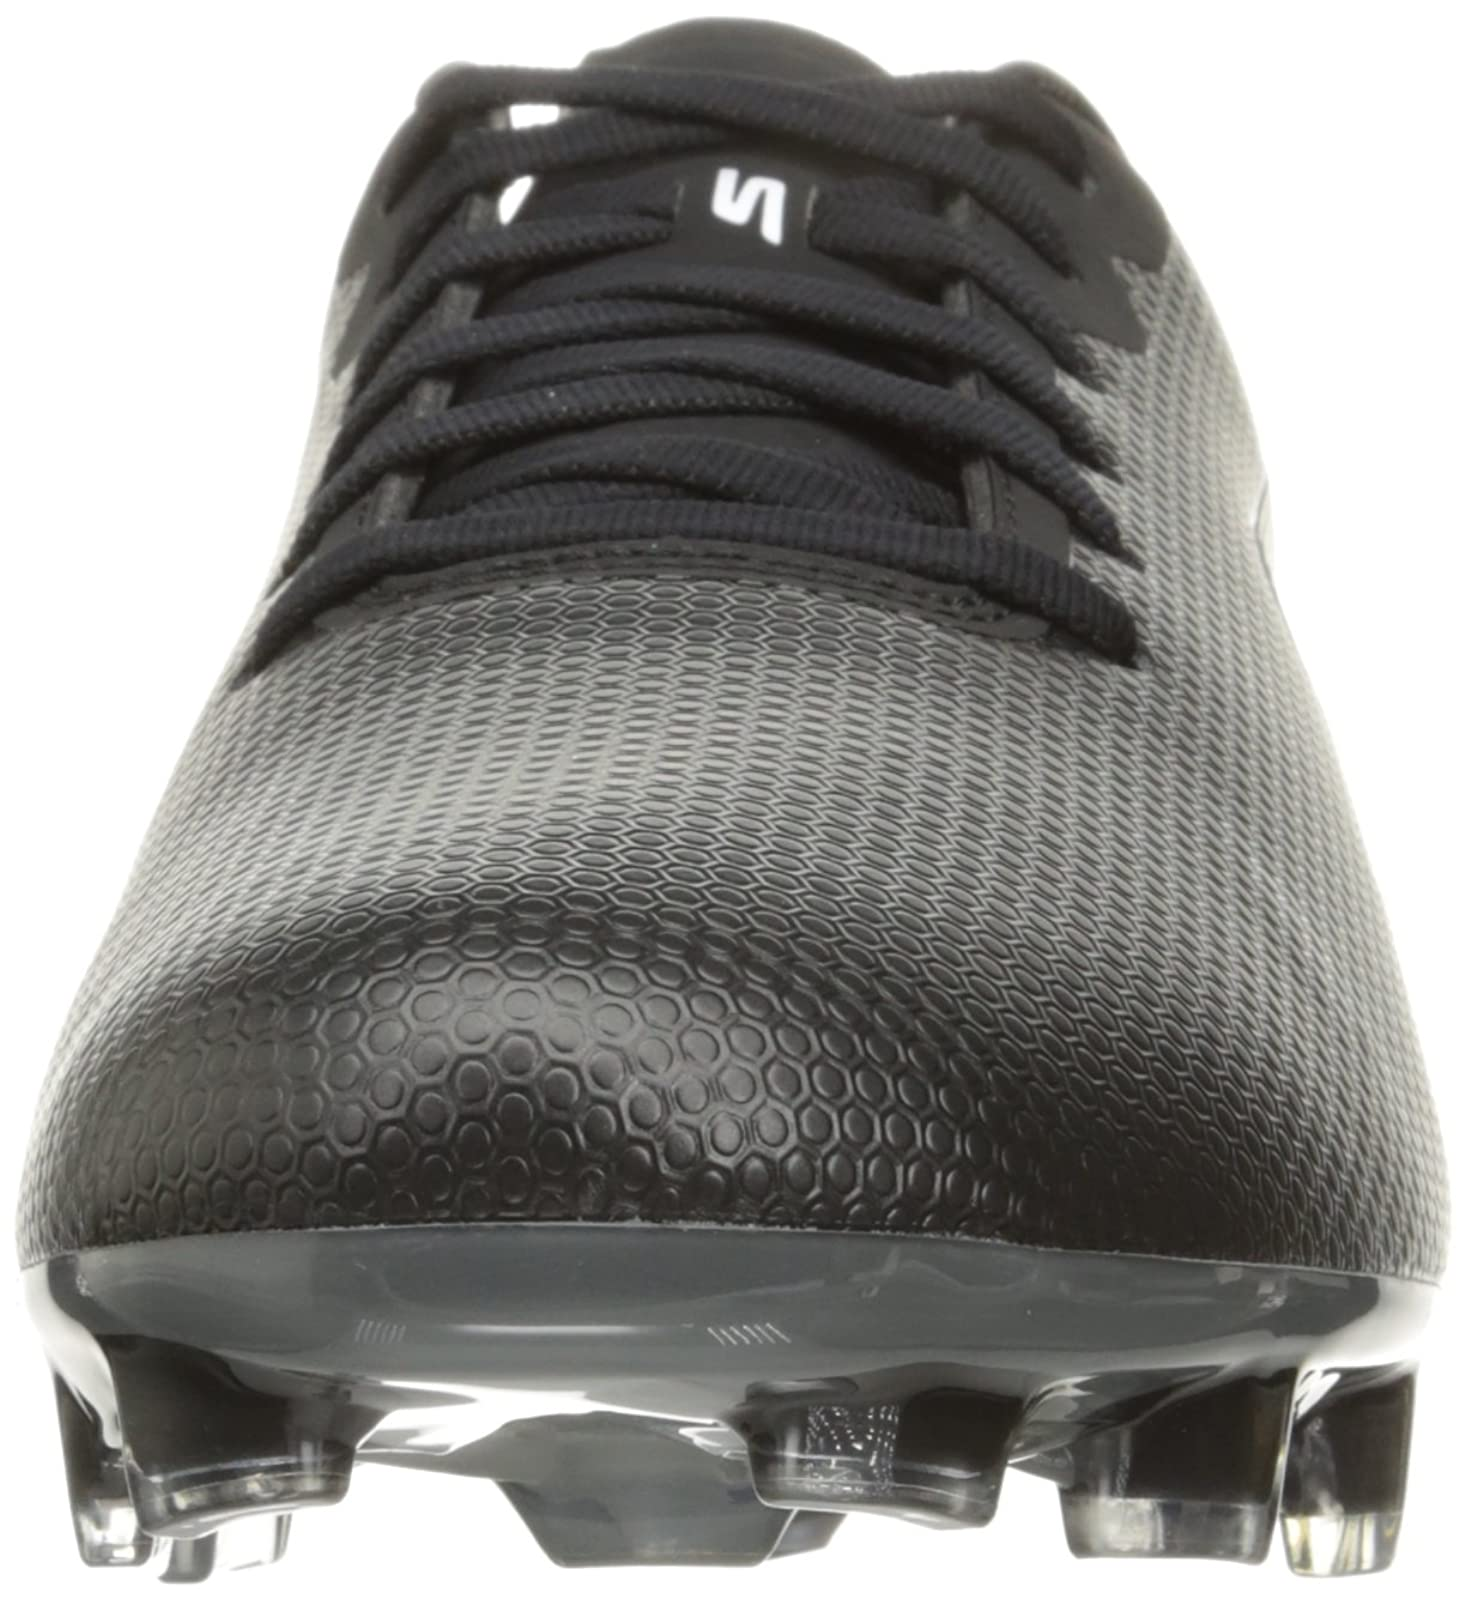 Skechers Performance Men's Go Galaxy FG White/Black - 4